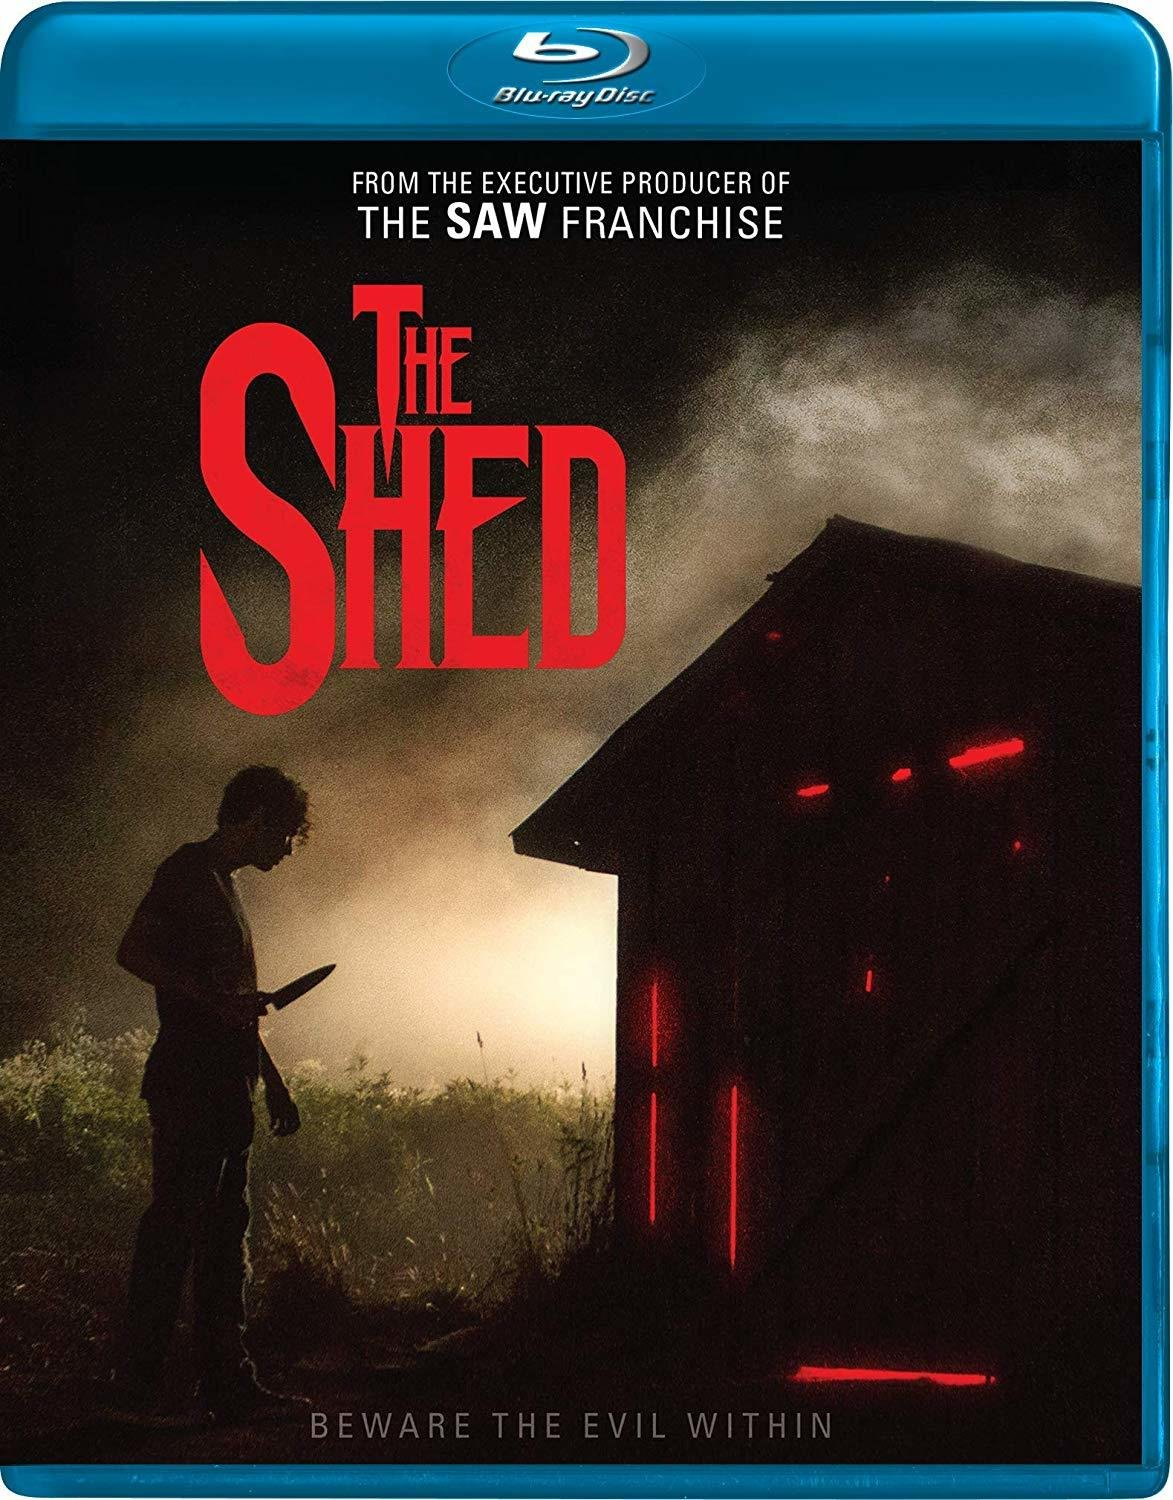 The Shed (2019) poster image